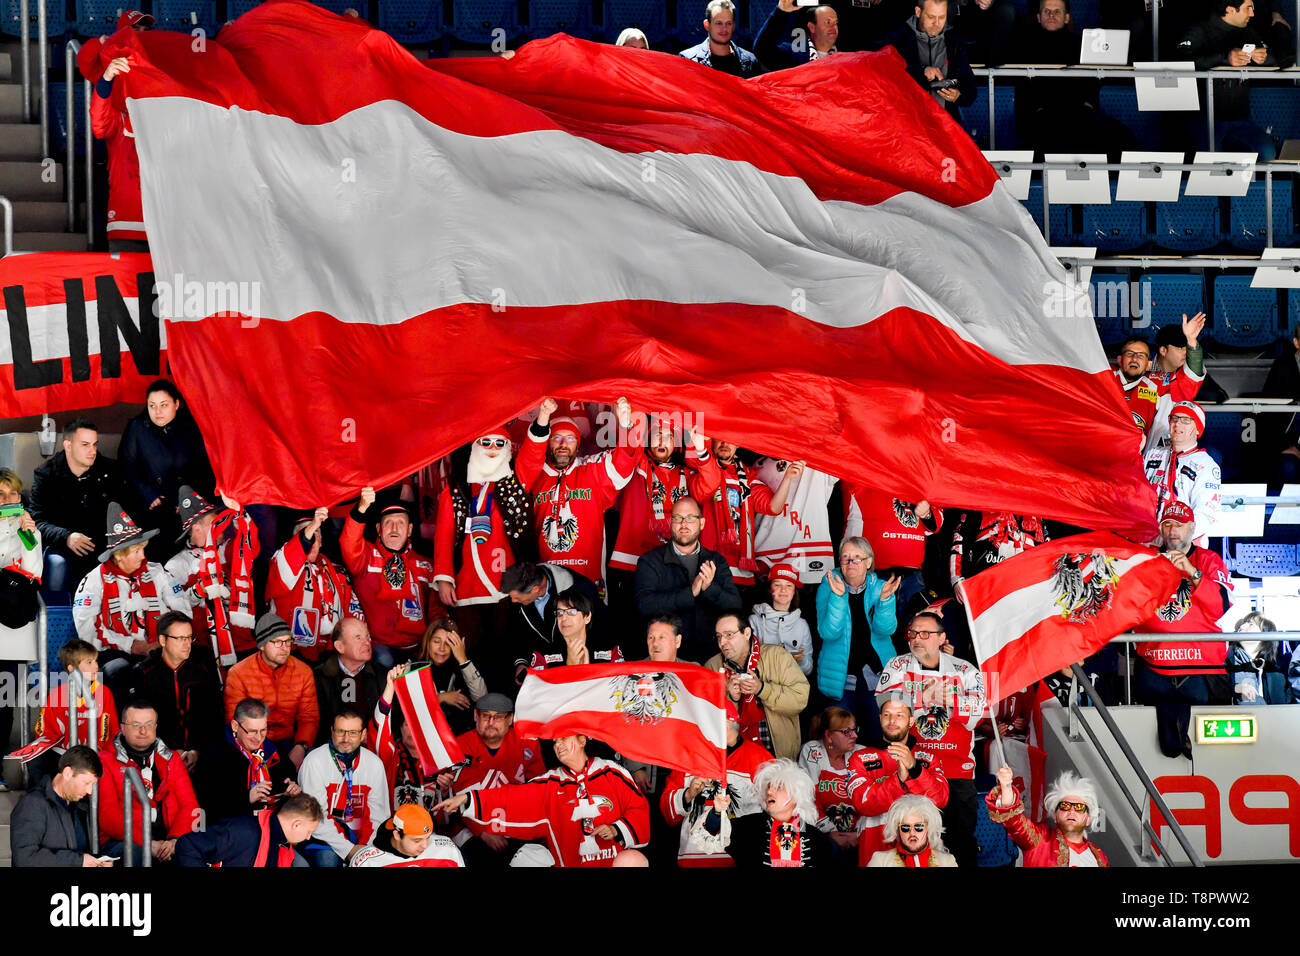 Bratislava, Slovakia. 14th May, 2019. Fans of Austria in action during the match Switzerland against Austria at the 2019 IIHF World Championship in Bratislava, Slovakia, on May 14, 2019. Credit: Vit Simanek/CTK Photo/Alamy Live News Stock Photo